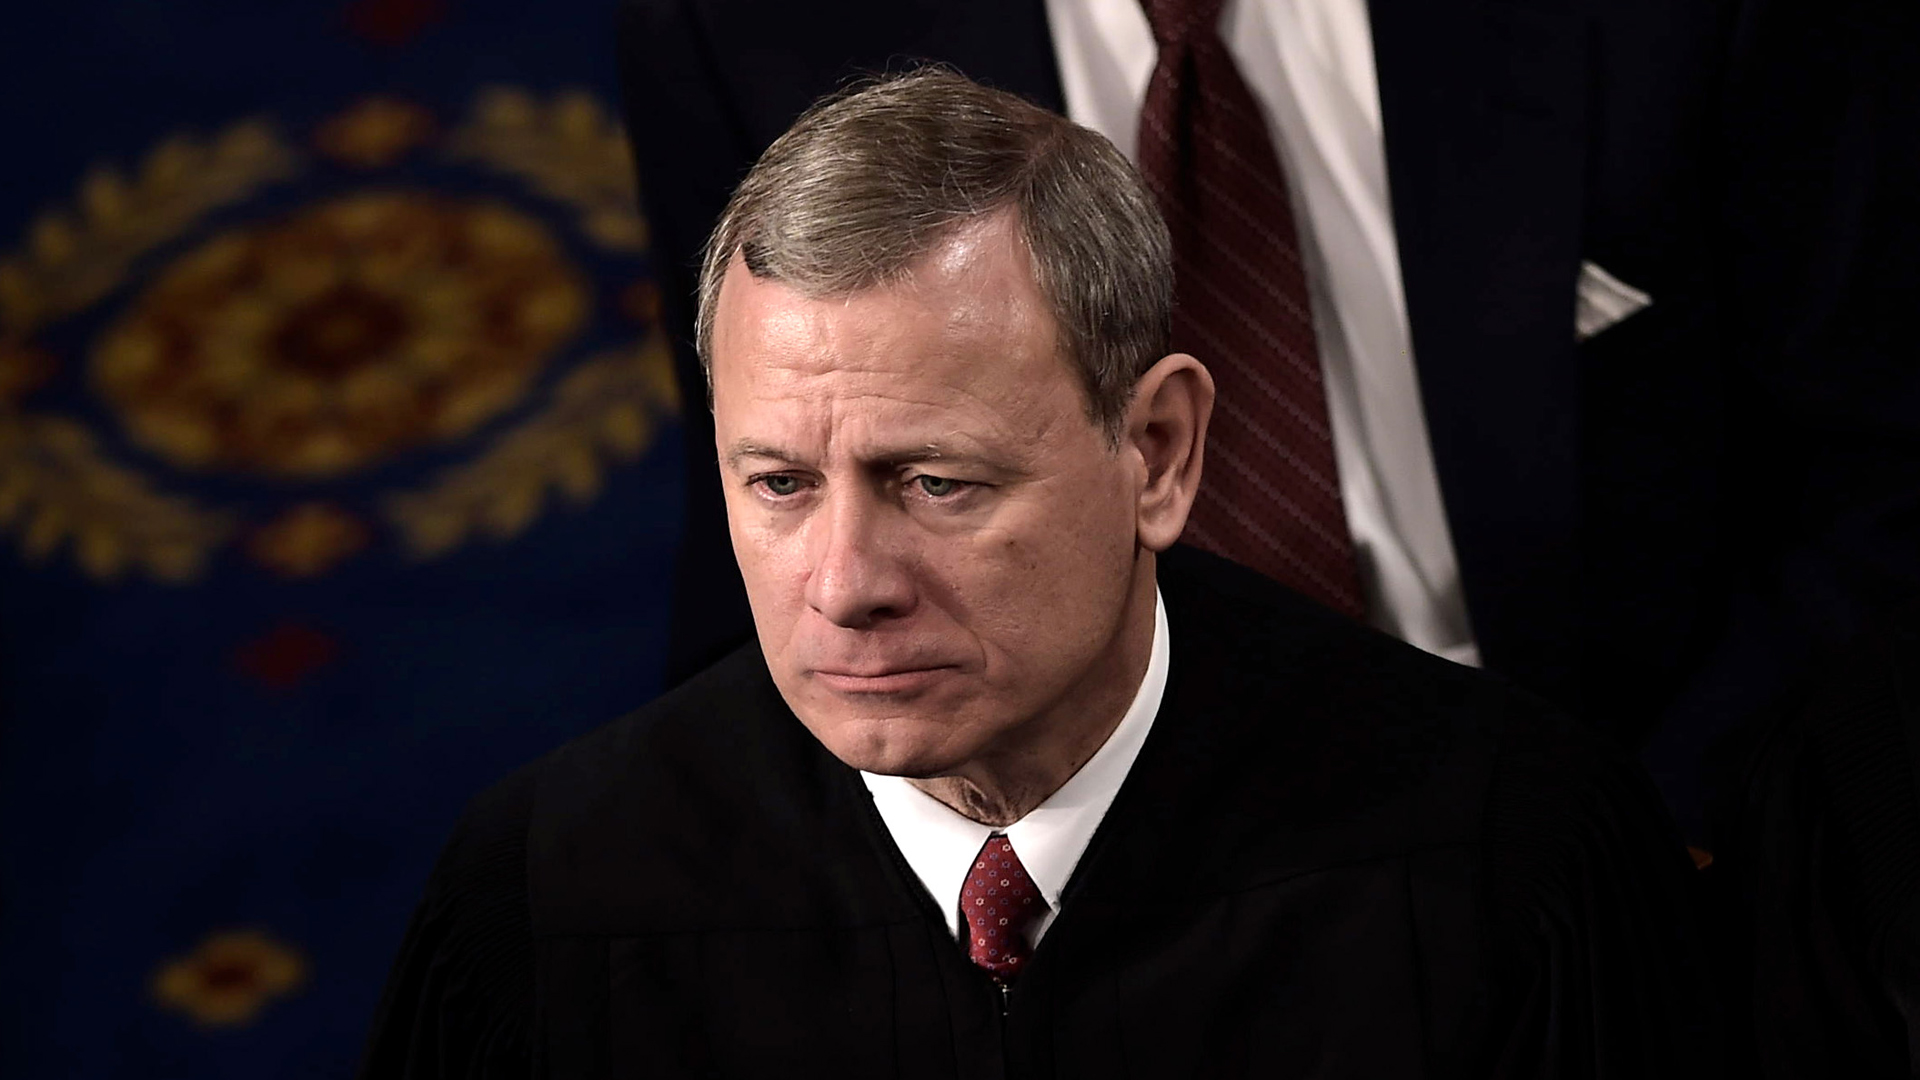 U.S. Supreme Court Justice John G. Roberts Jr. listens as President Donald Trump delivers the State of the Union address at the U.S. Capitol in Washington, D.C., on Jan. 30, 2018. (Credit: BRENDAN SMIALOWSKI/AFP via Getty Images)